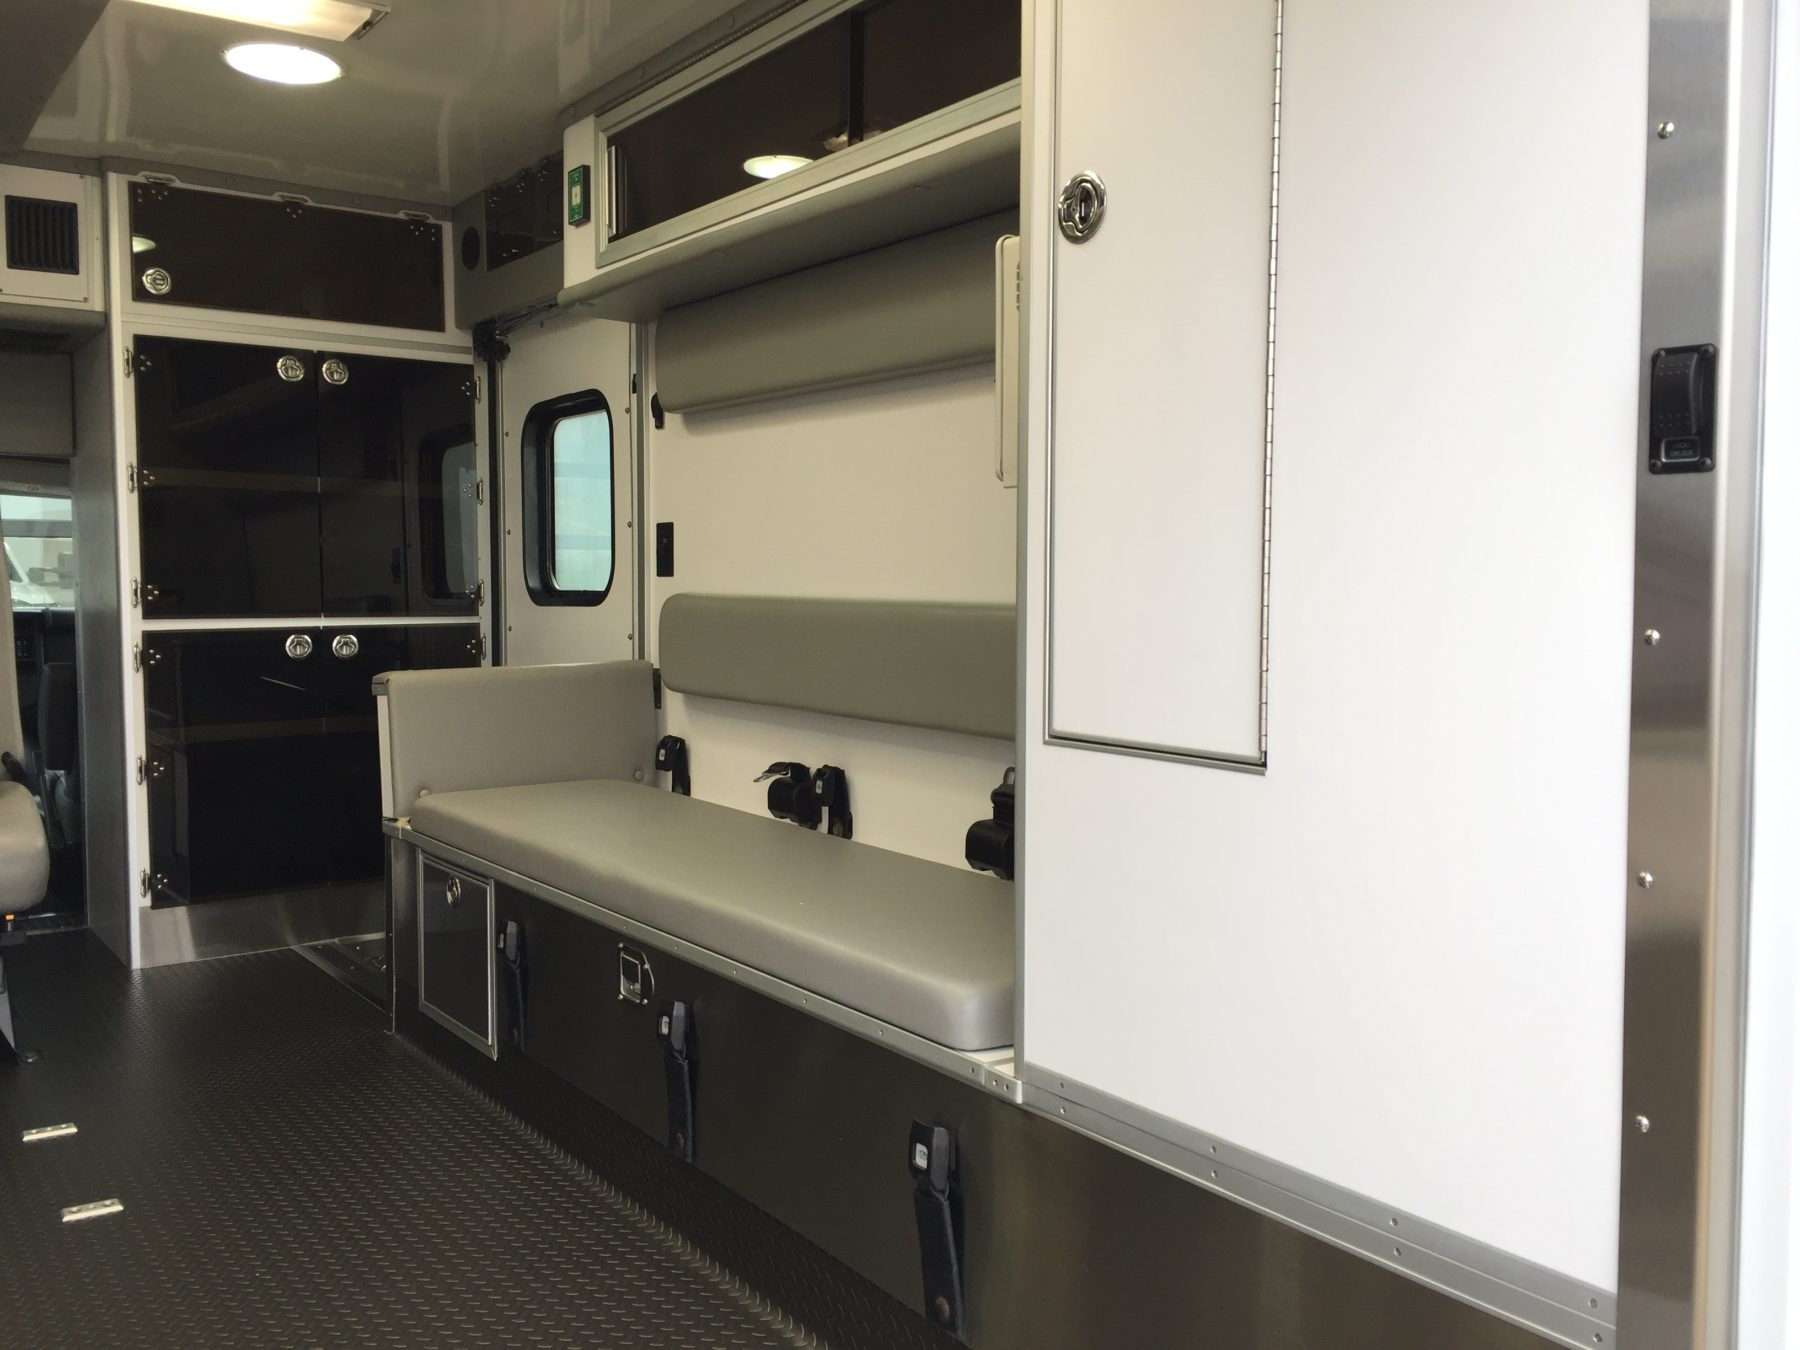 2016 Chevrolet G4500 Type 3 Ambulance For Sale – Picture 9